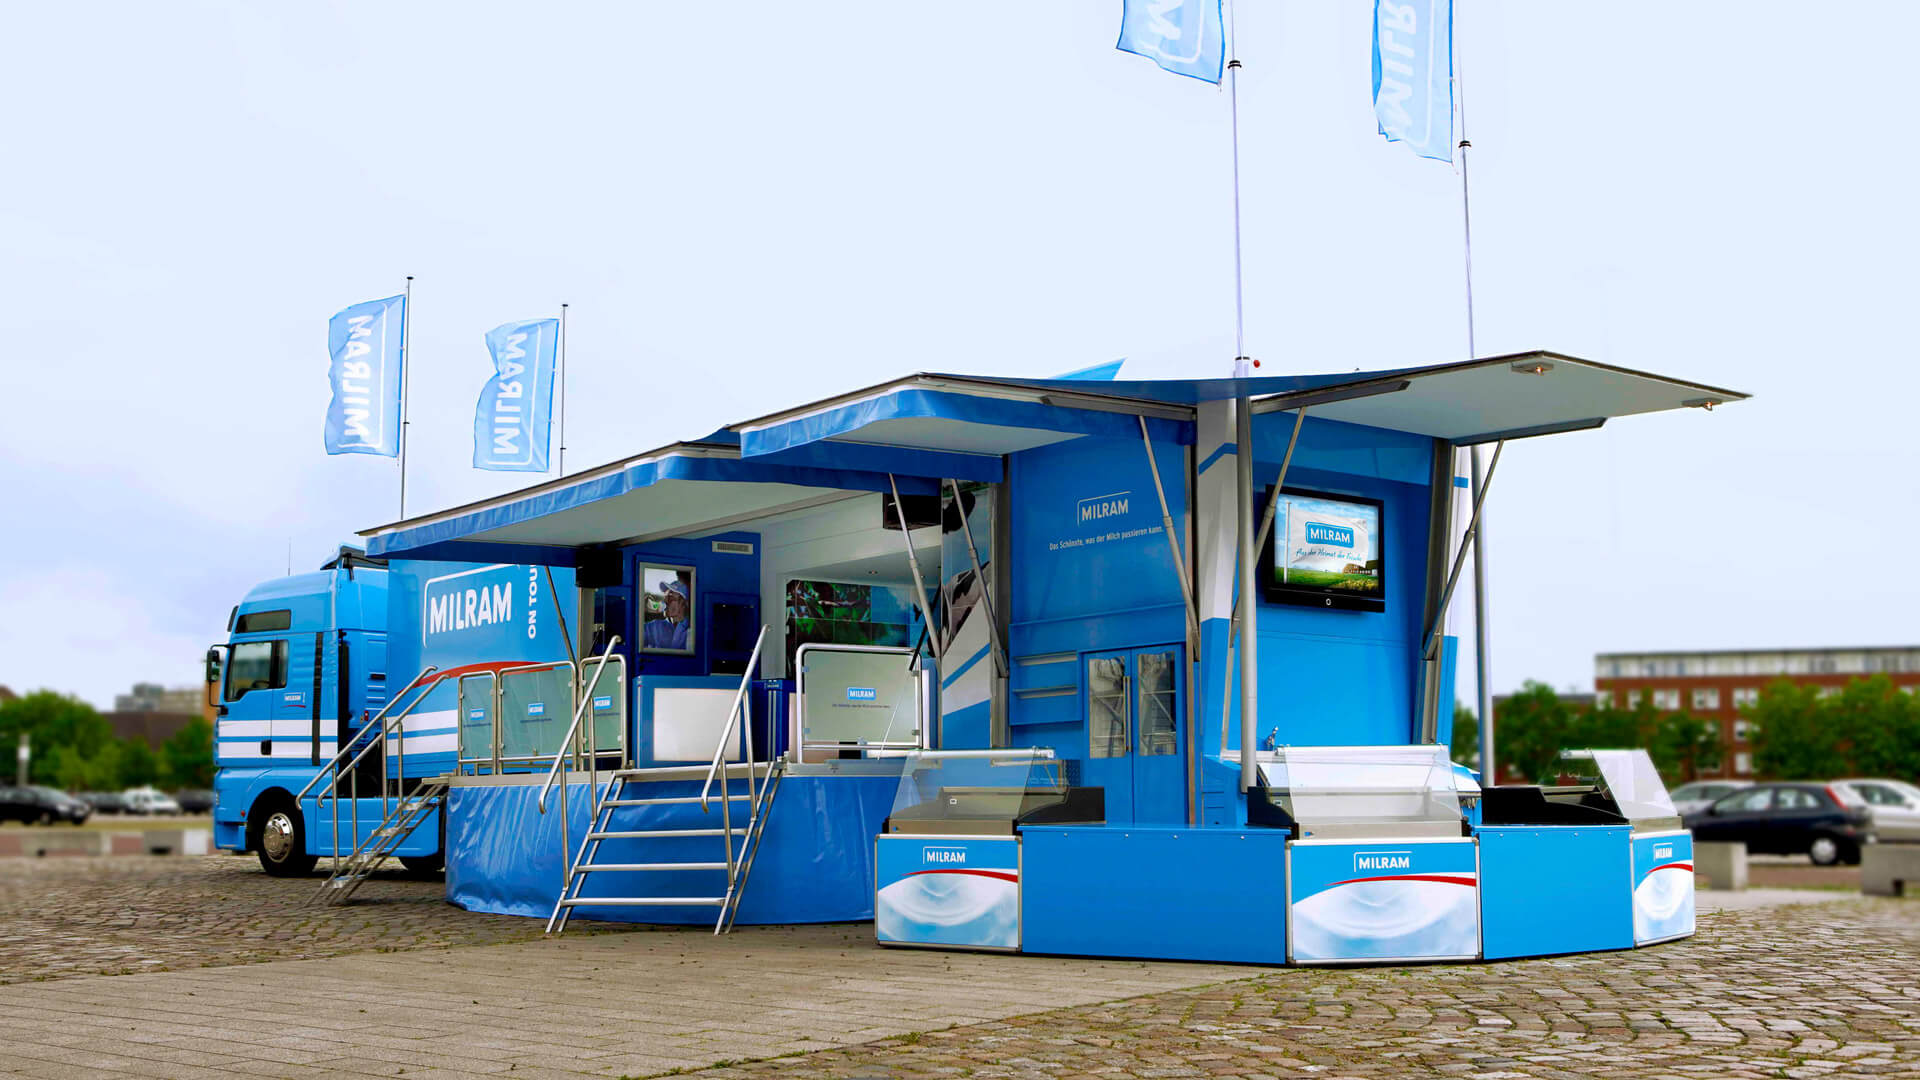 Ausstellungsfläche mobiles-Marketing Promotion Infomobil Truck Roadshow Showtruck